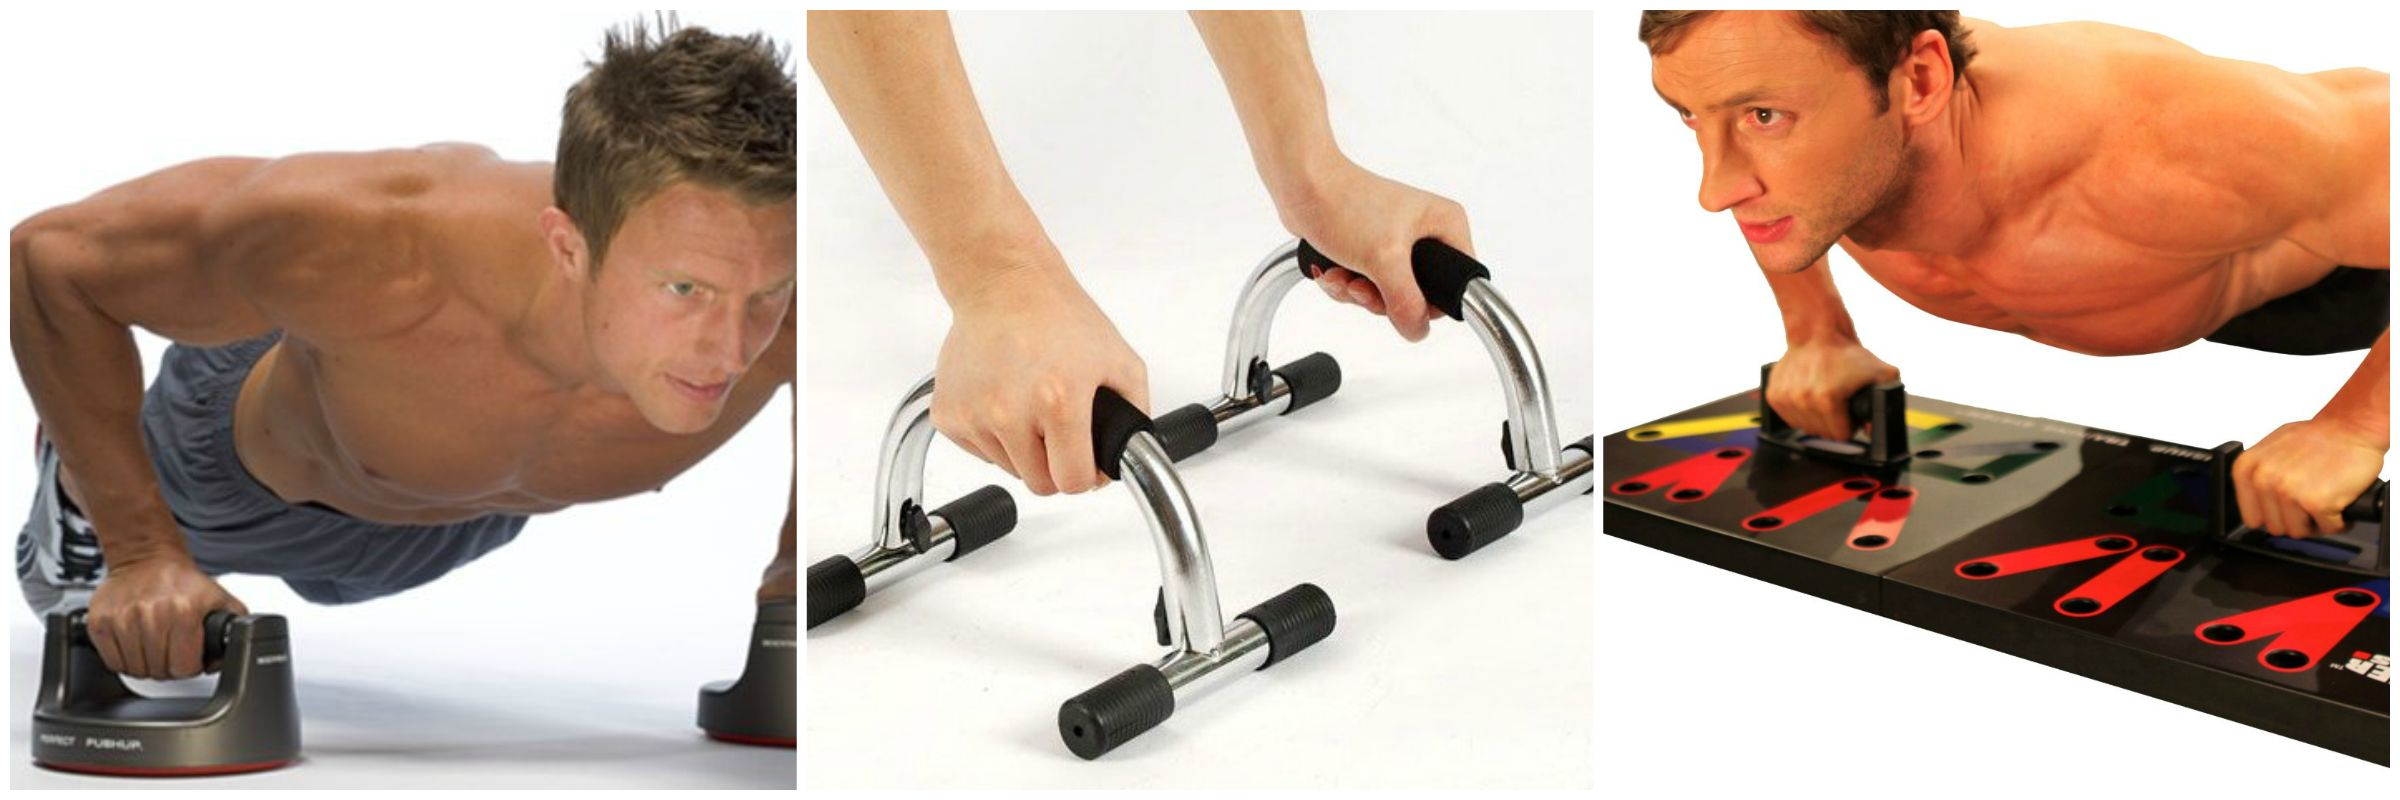 push-up-equipment